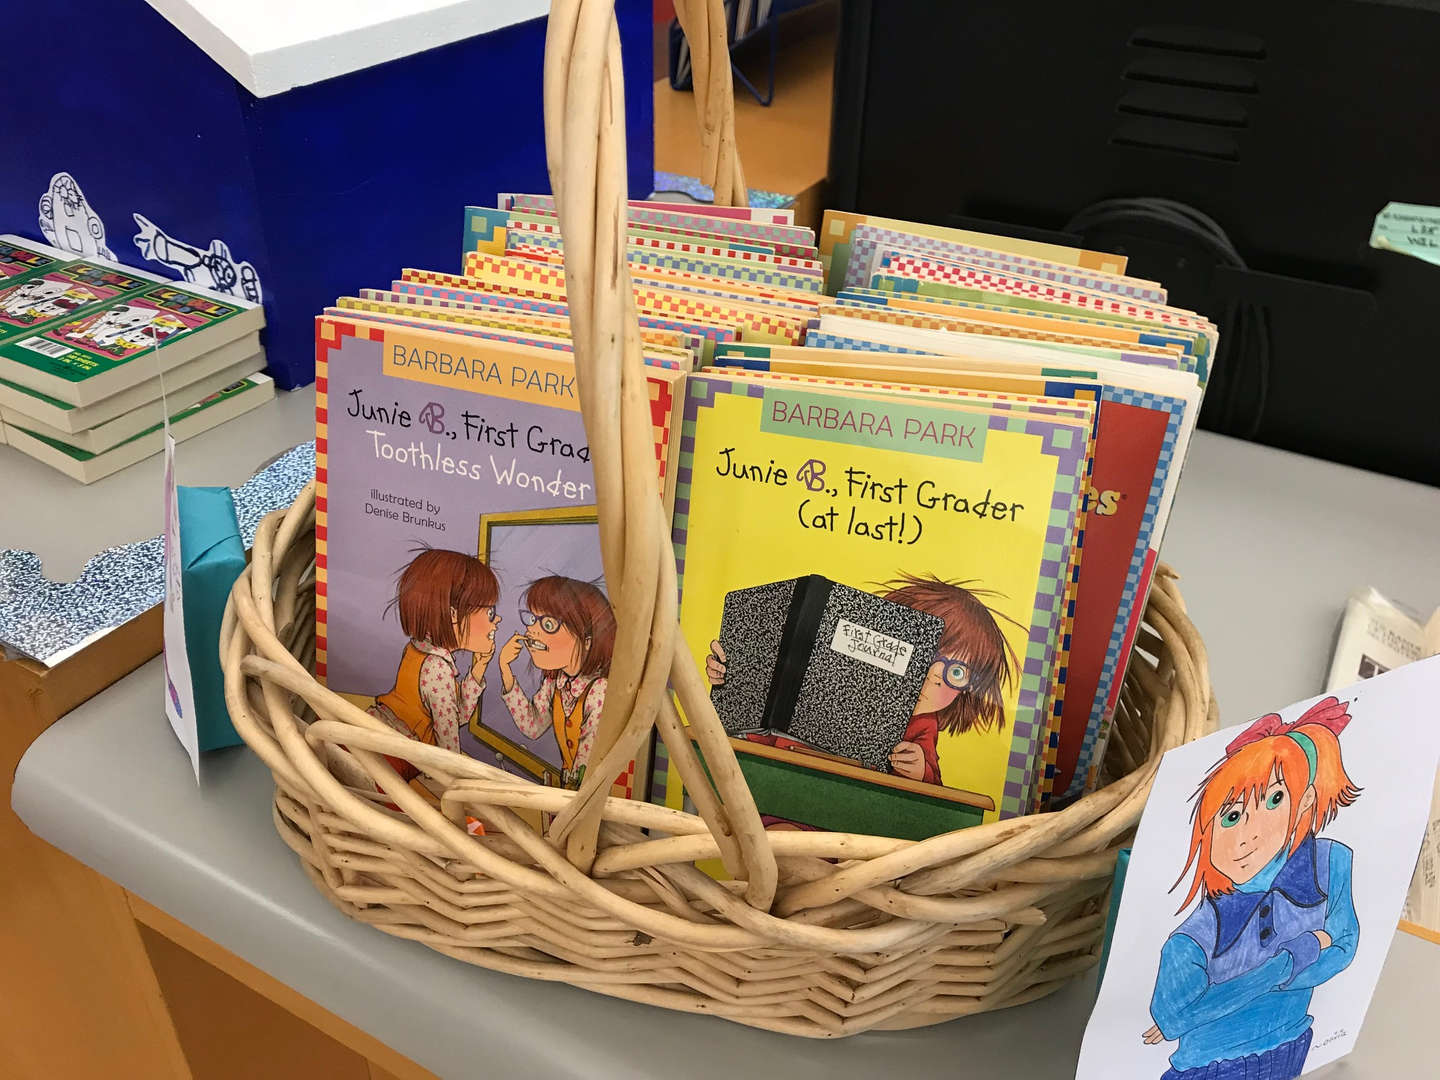 A paperback book series in a basket on a table.